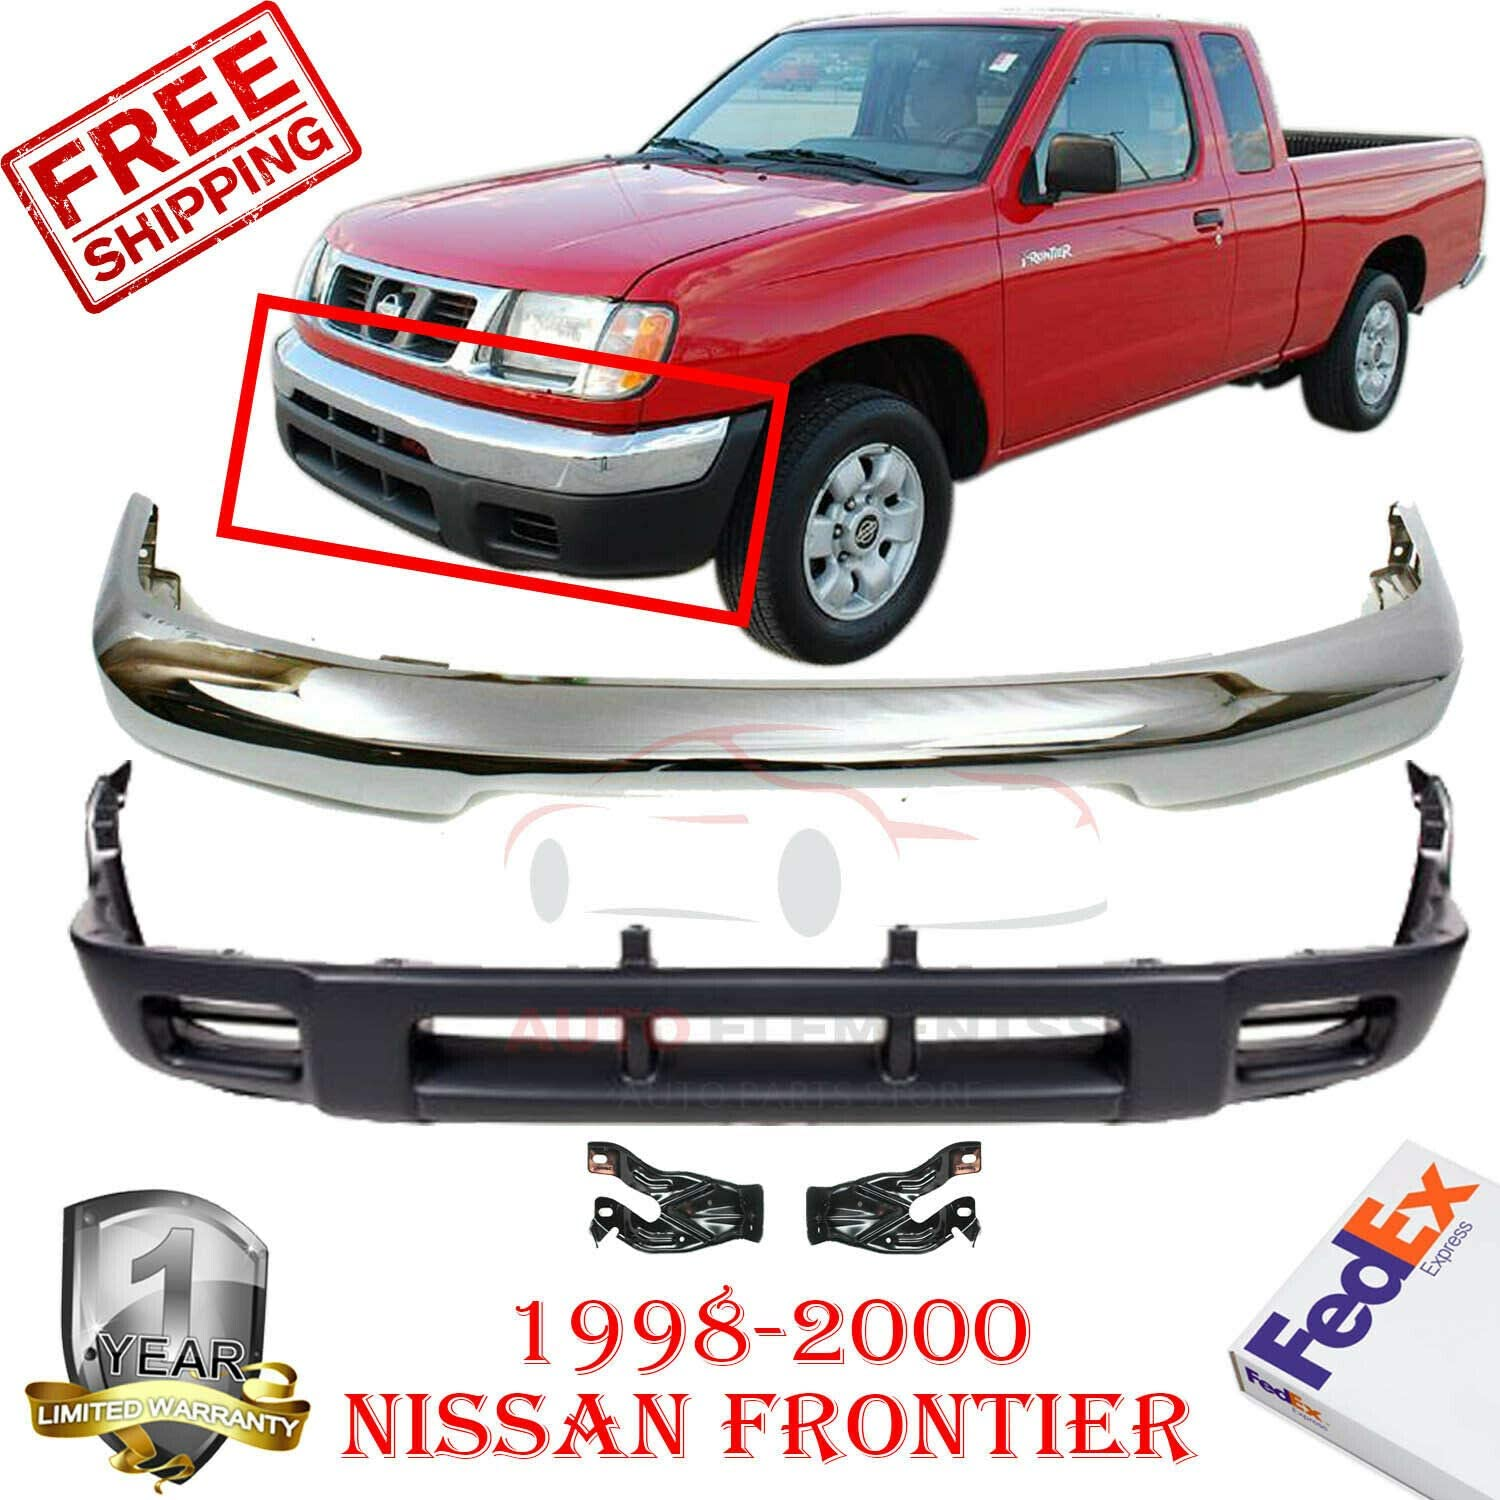 NEW Chrome Steel Front Bumper Face Bar for 1998-2000 Nissan Frontier Pickup